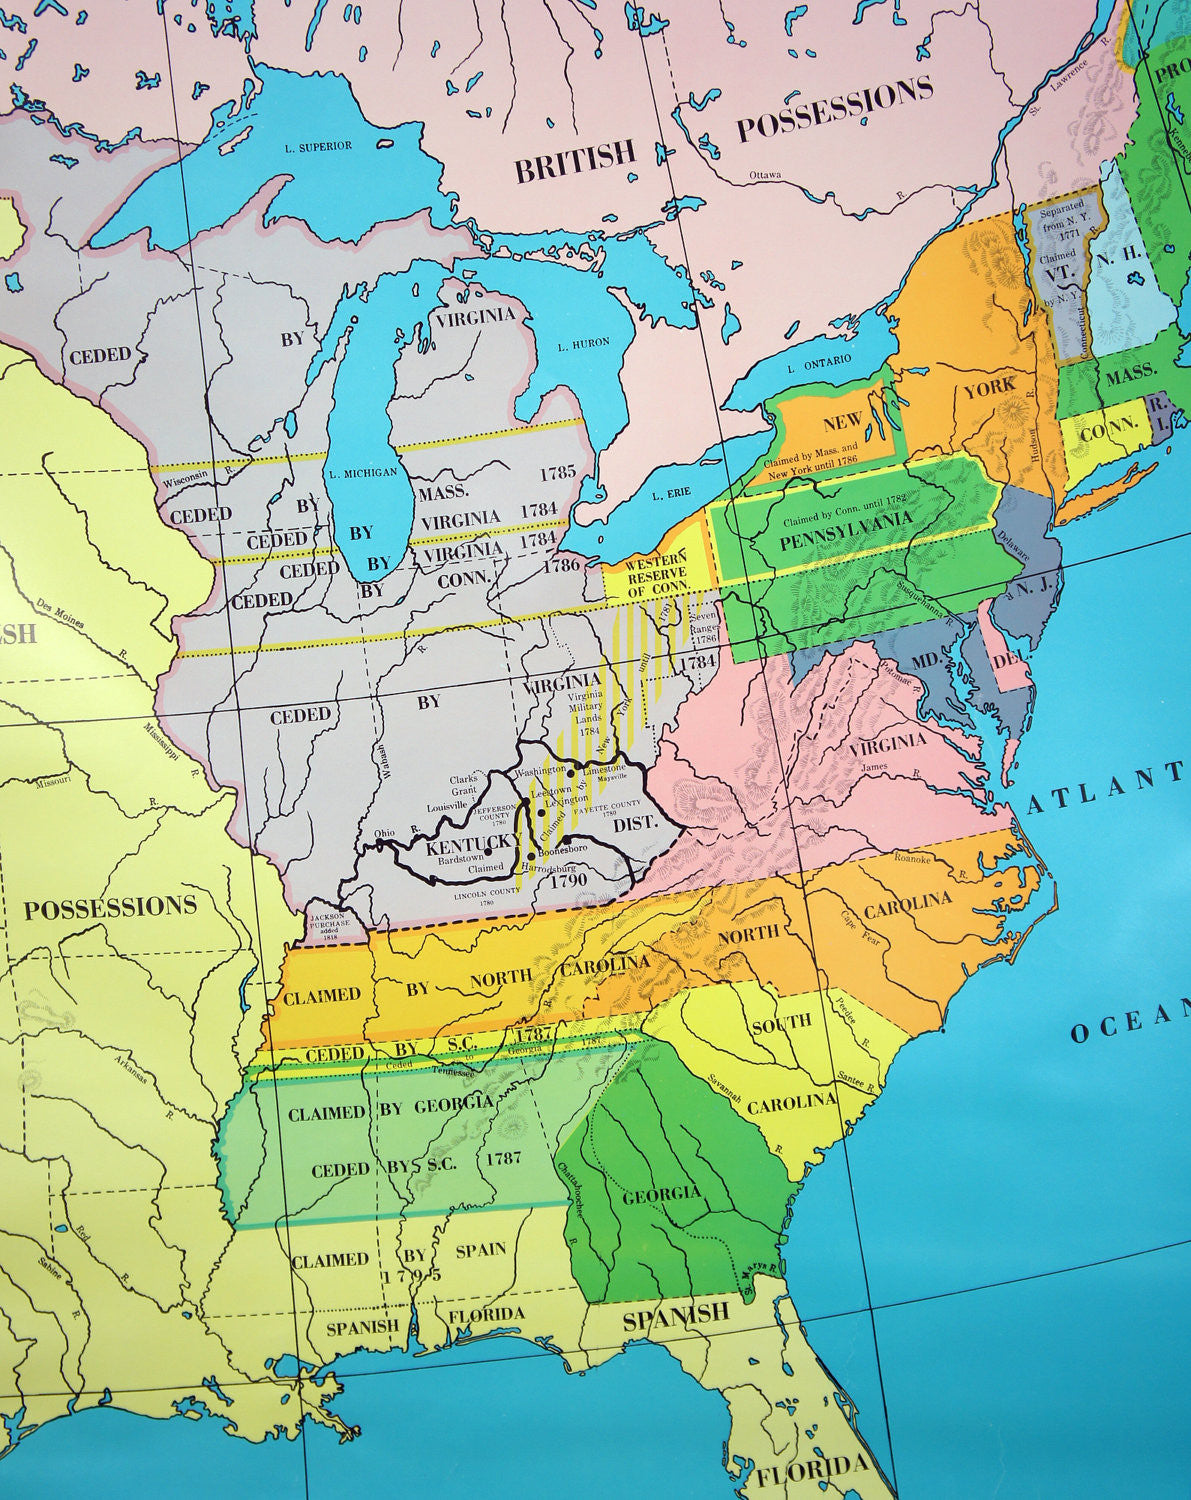 Vintage US History Wall Map Western Land Claims Ordinance of